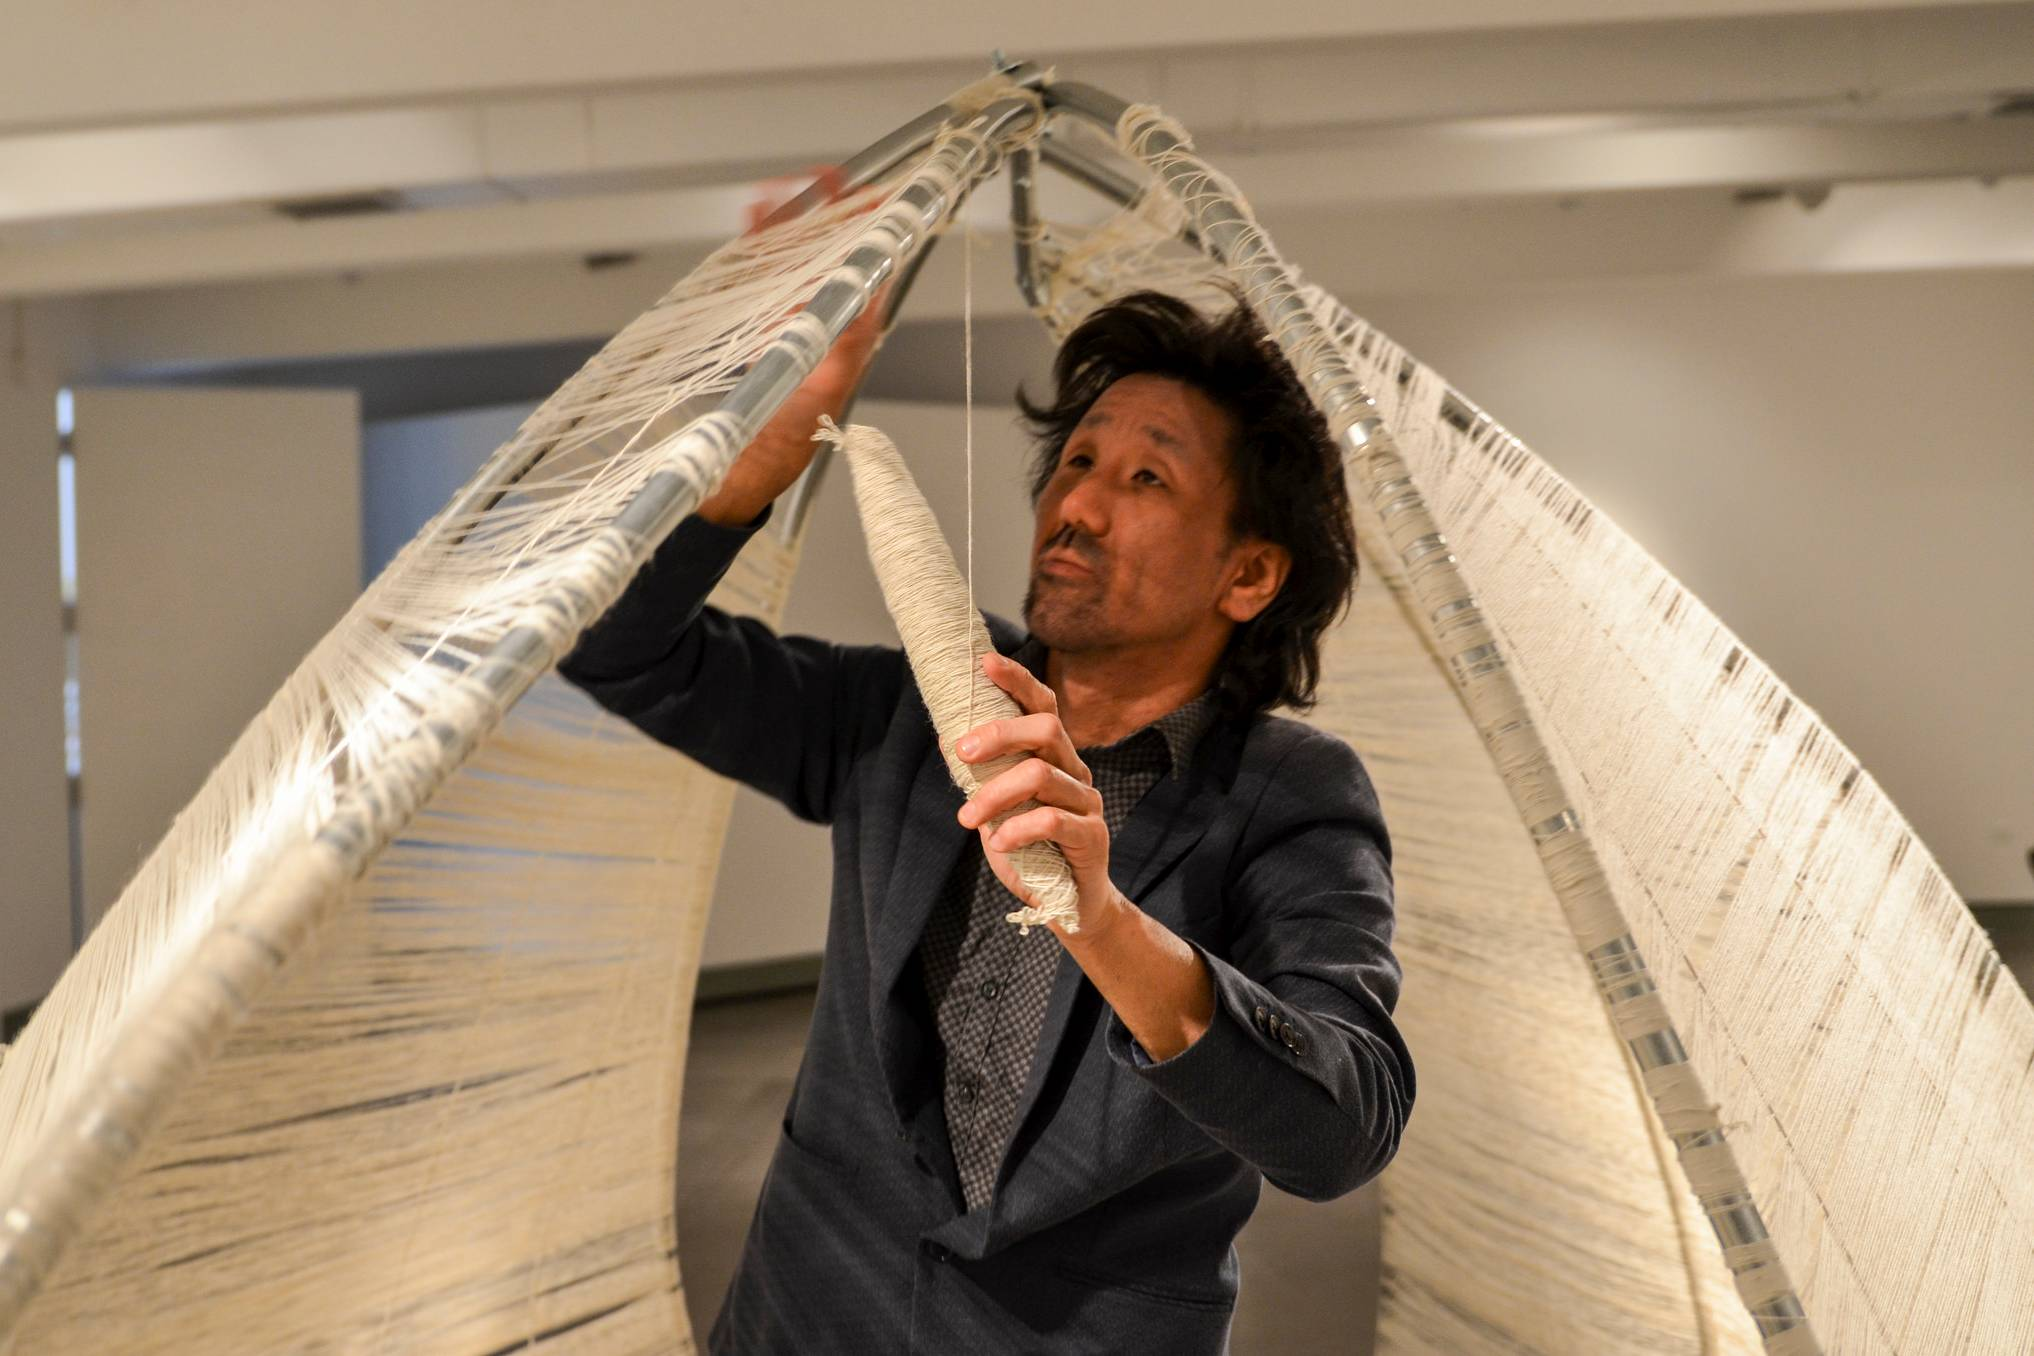 International artist Shinpei Takeda is an artist in residence at San Diego Mesa College this month as he works on his installation and performing art piece 'Fobia' in the Art Gallery, located in D-101.